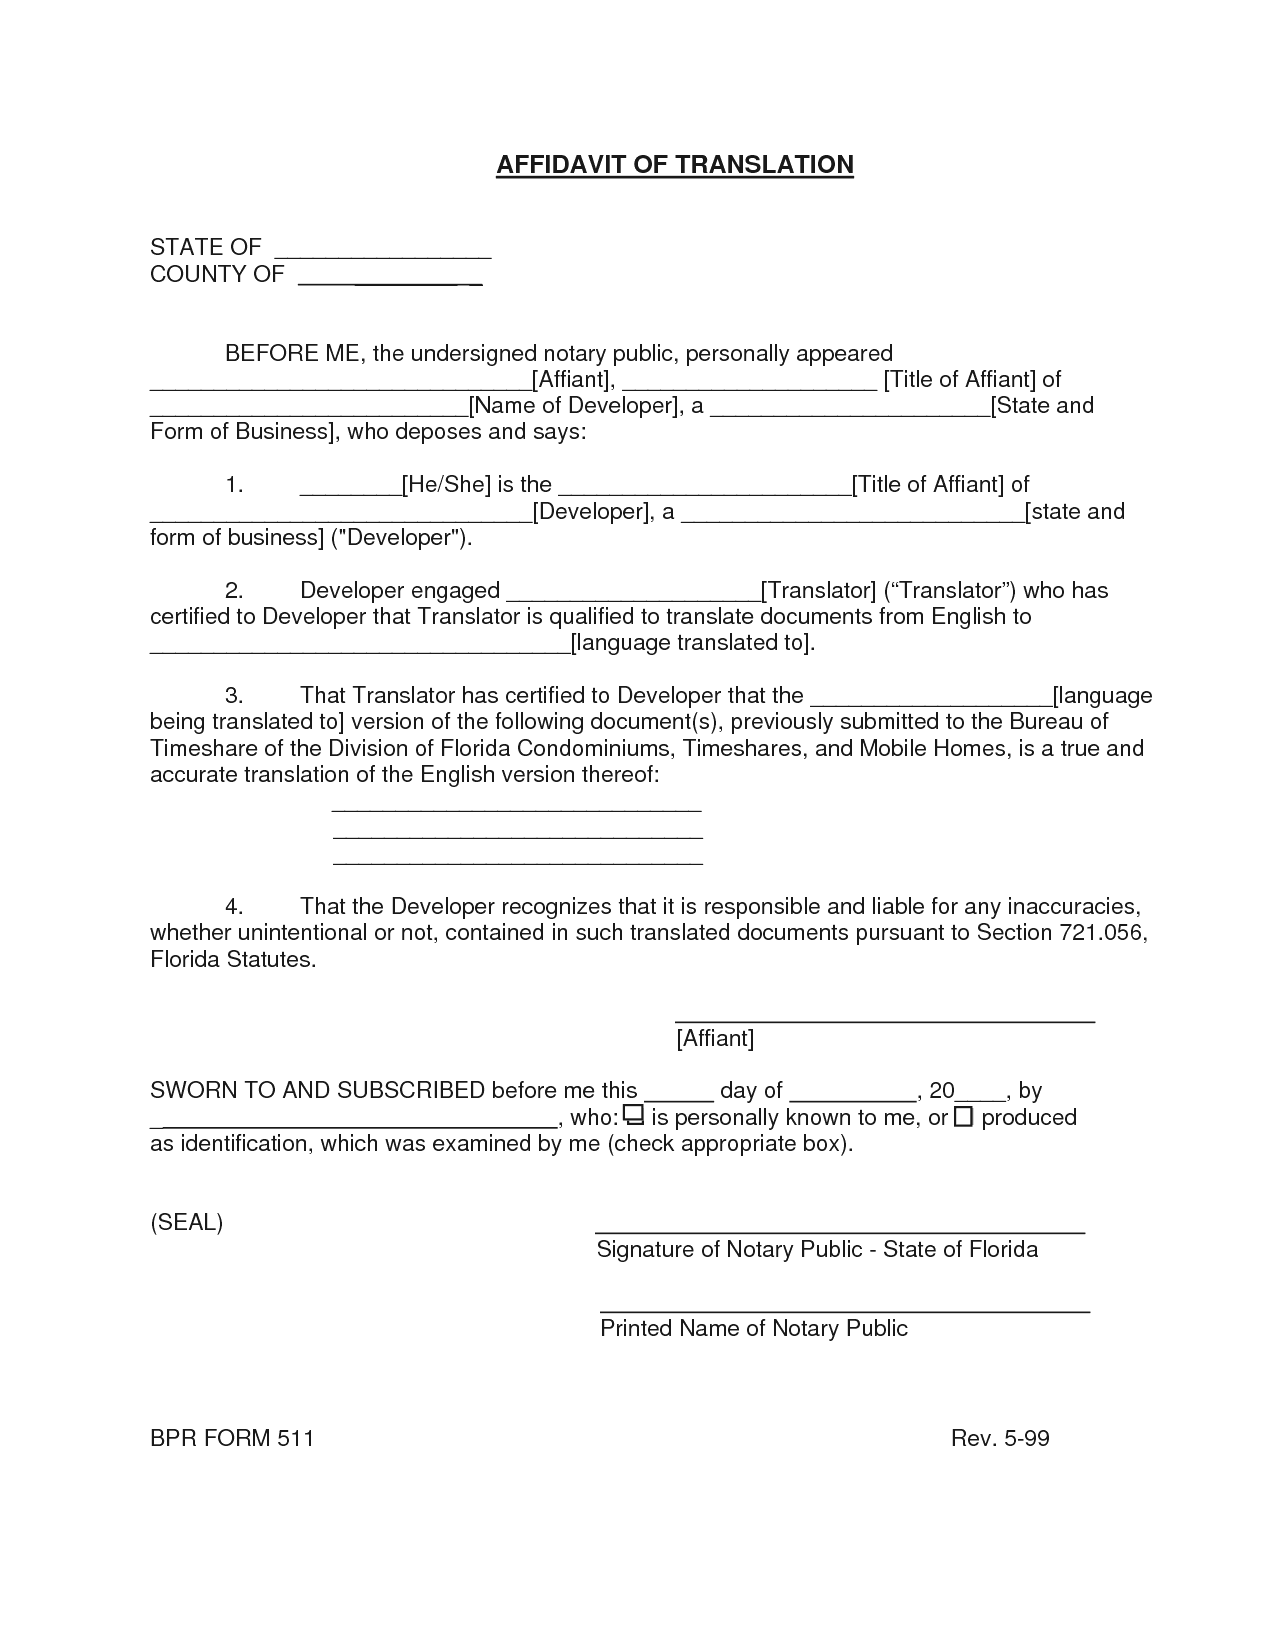 Mexican birth certificate translation template pdf free for Mexican birth certificate translation template